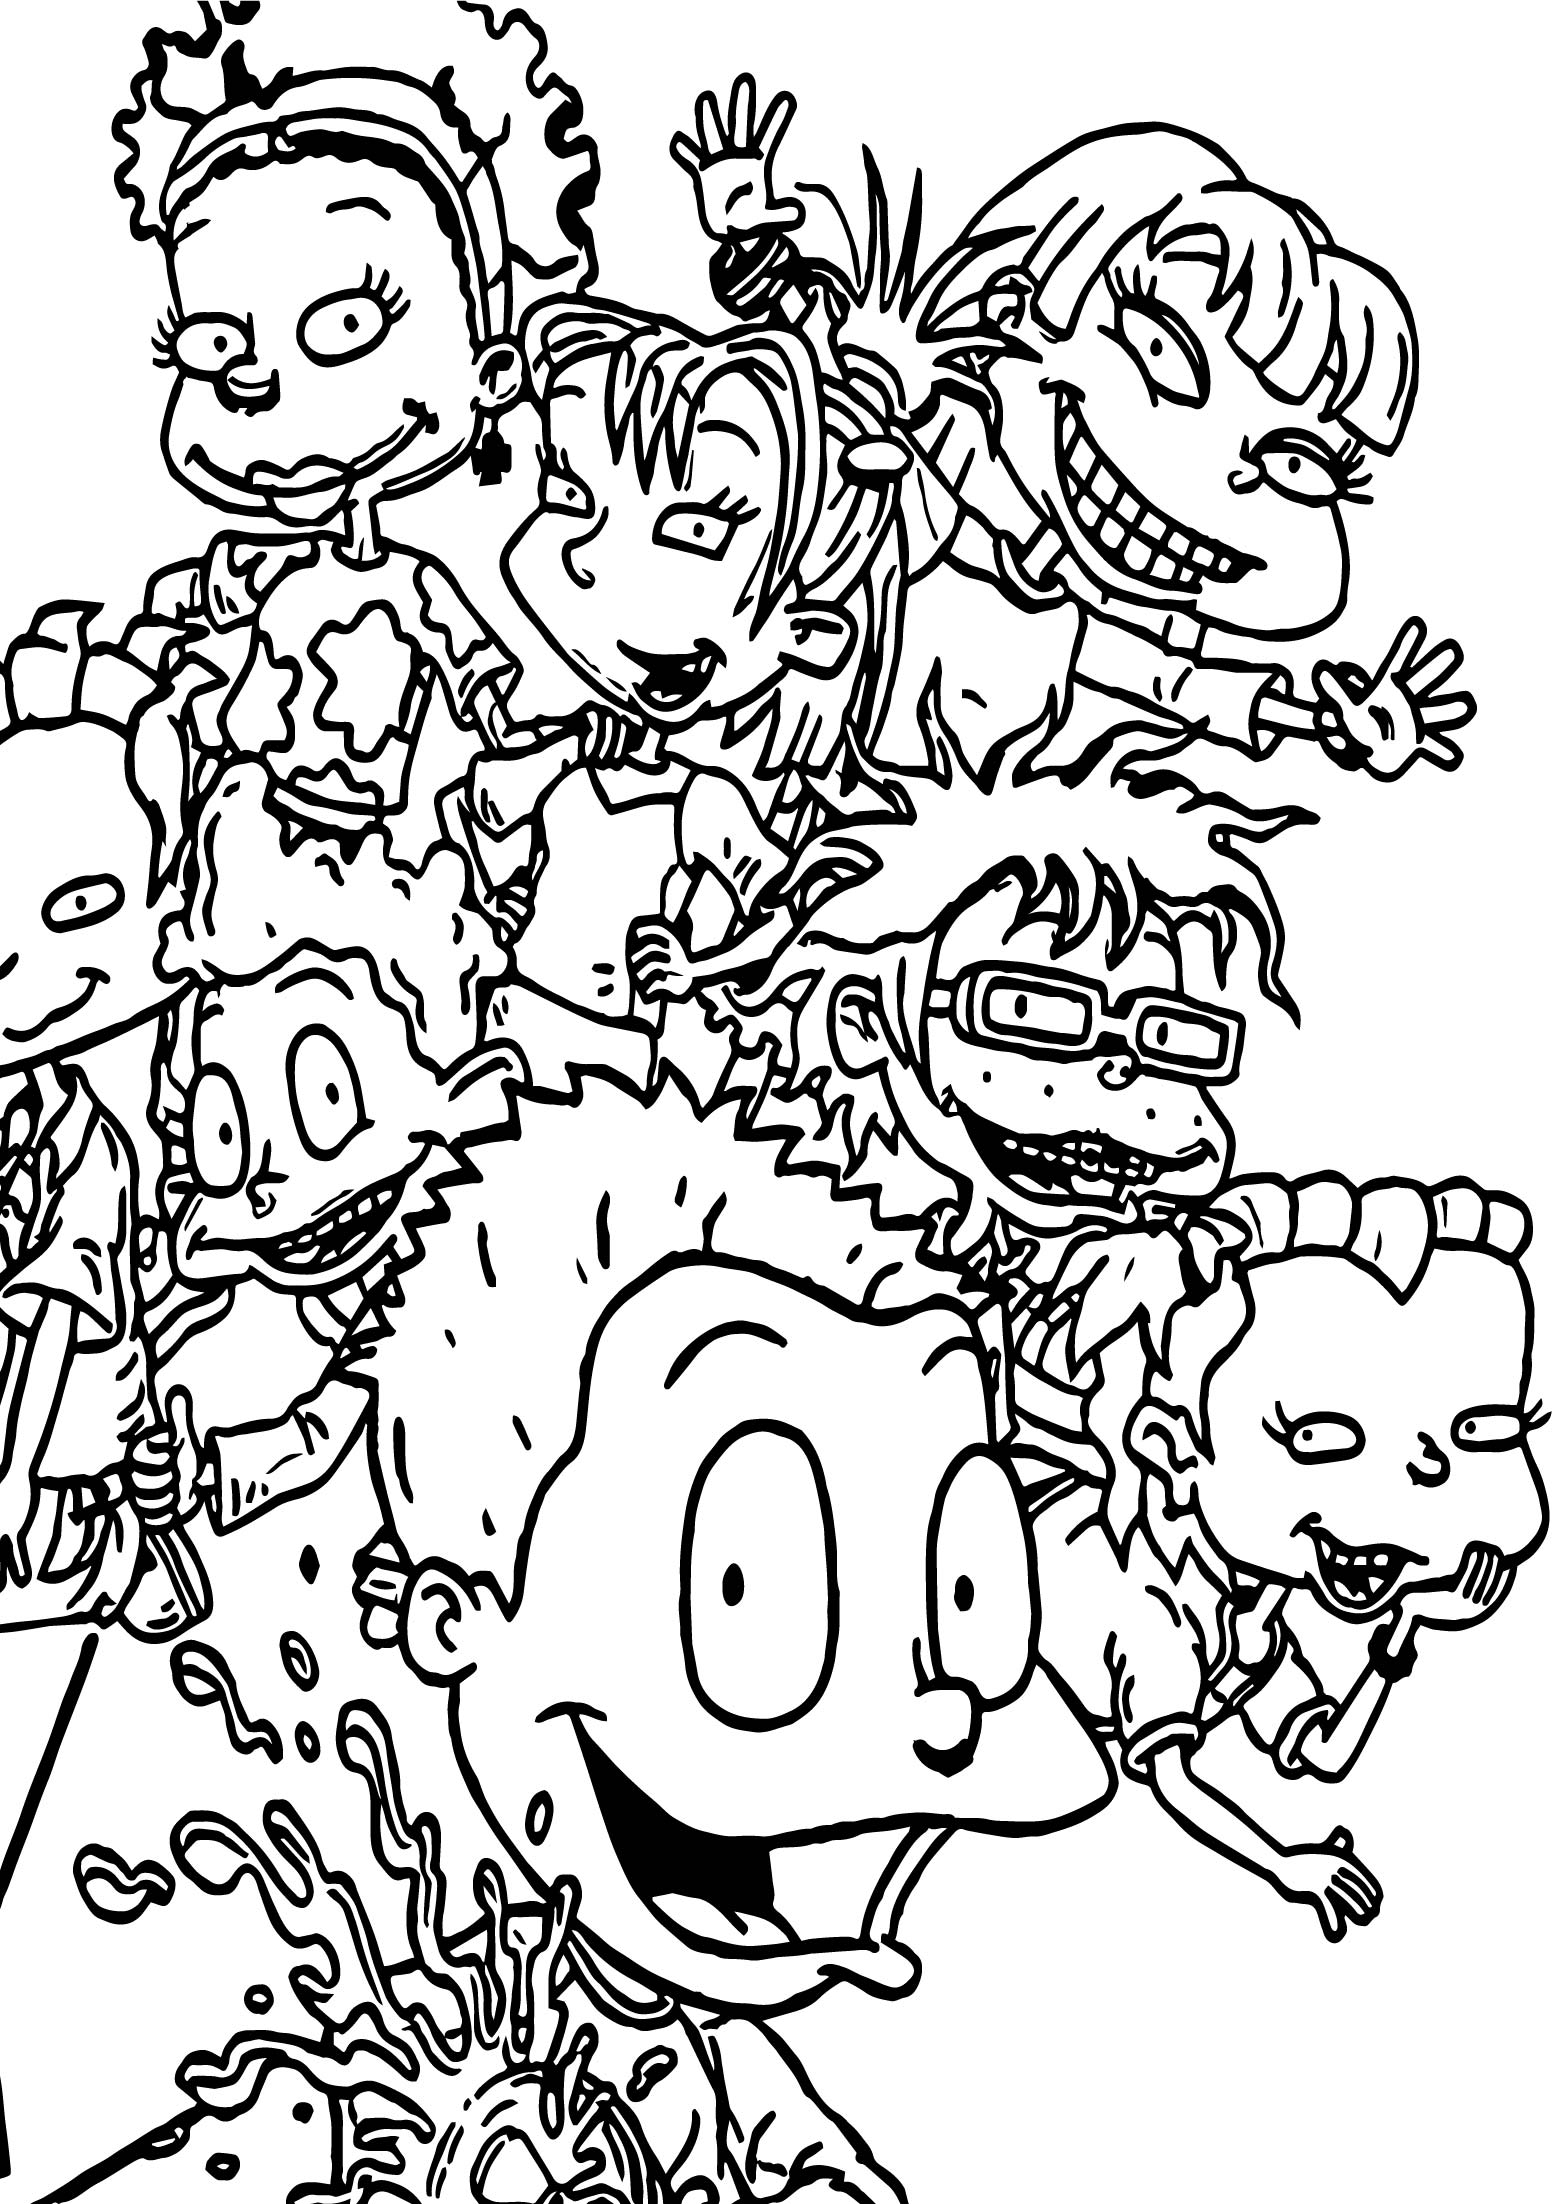 Rugrats Wallpaper Coloring Page